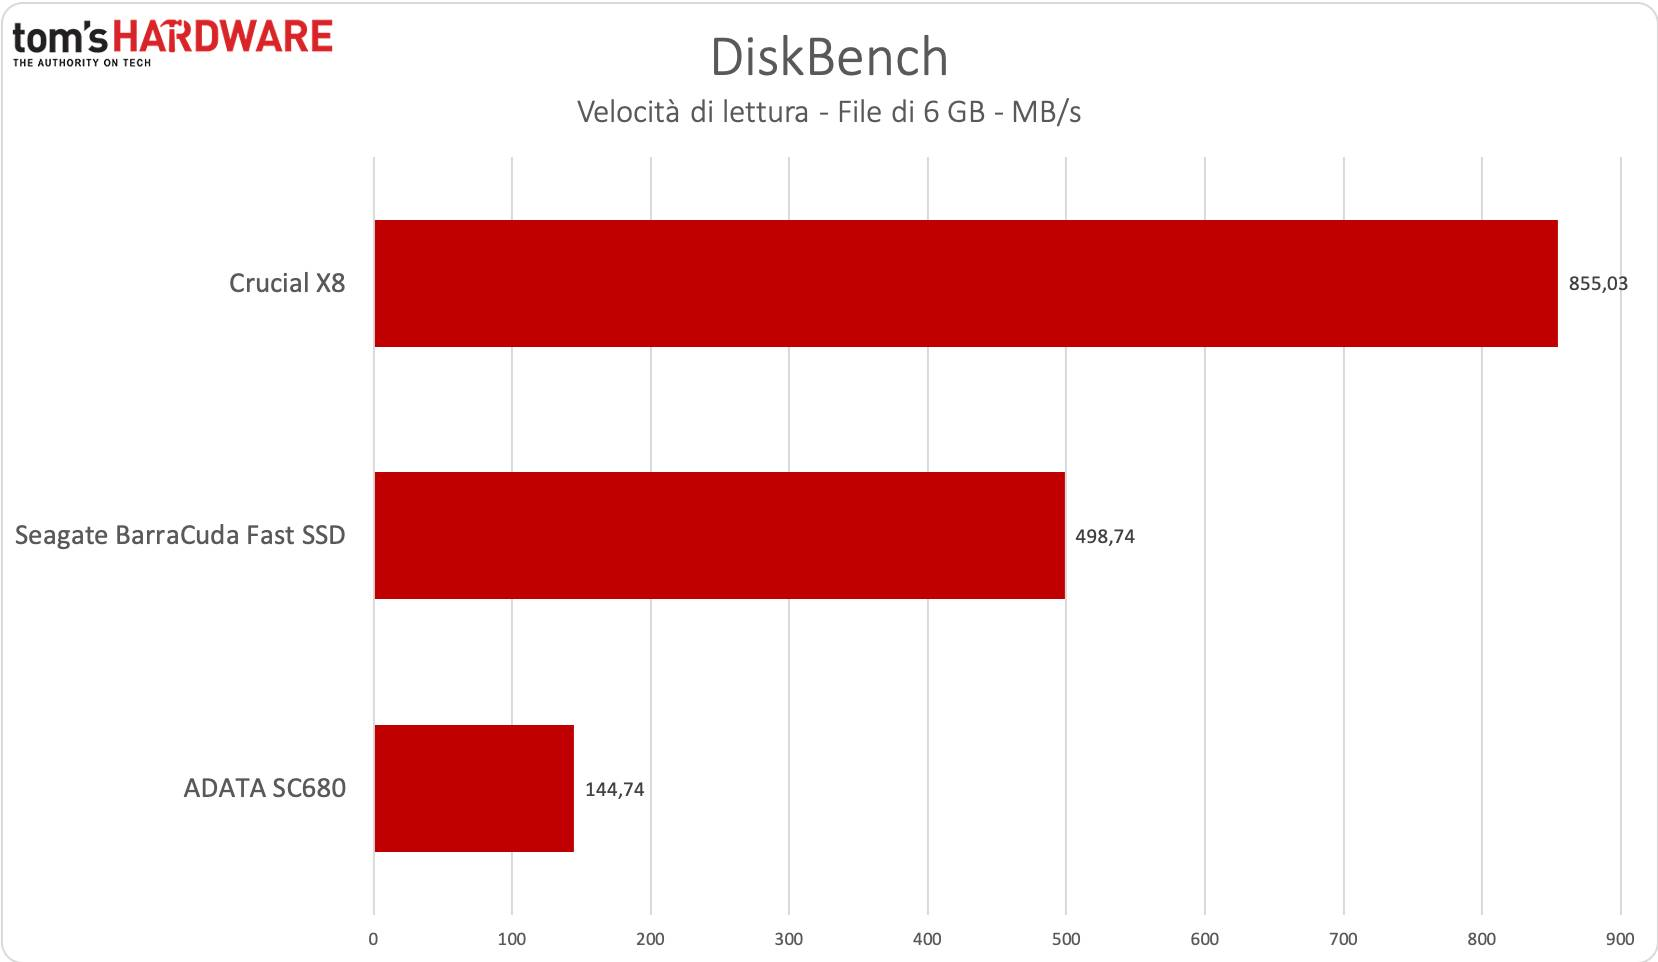 Benchmark BarraCuda Fast SSD - Diskbench lettura